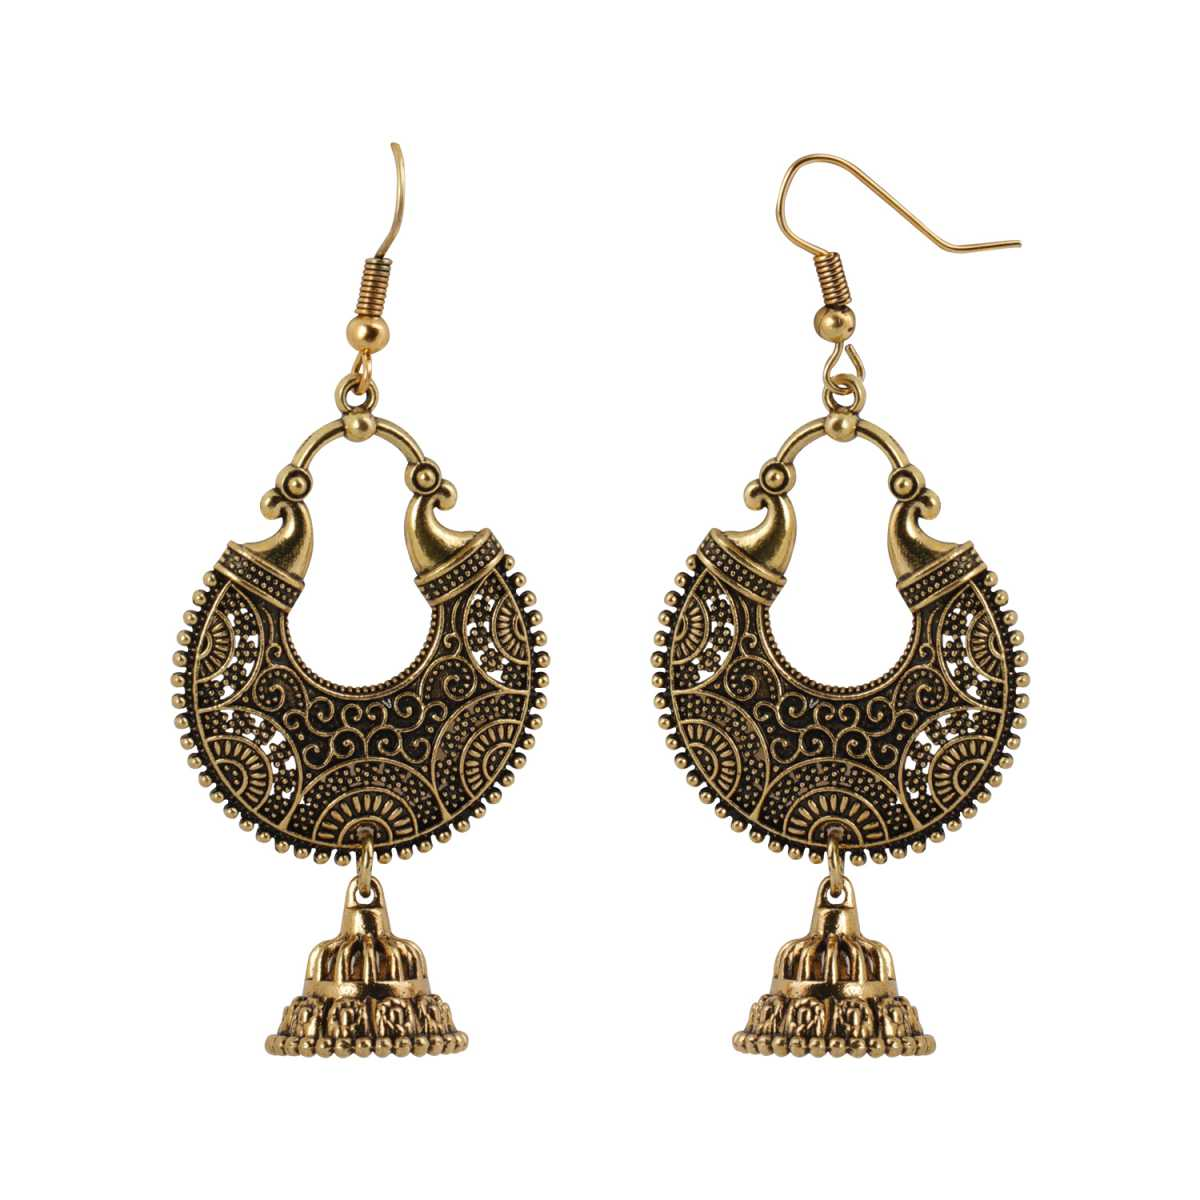 Silver Shine Eye-Catching Chandbali Unique Golden Earrings for Women